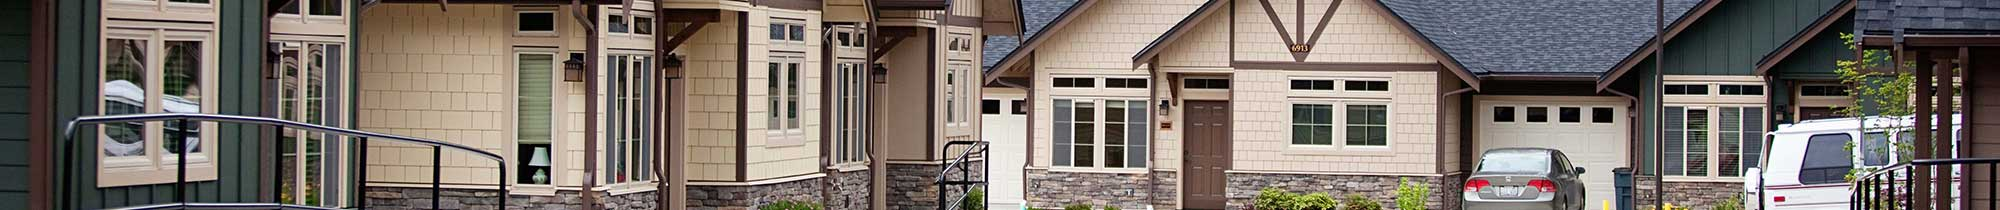 The Lodge at Mallard's Landing offers cottage living options for it's residents.